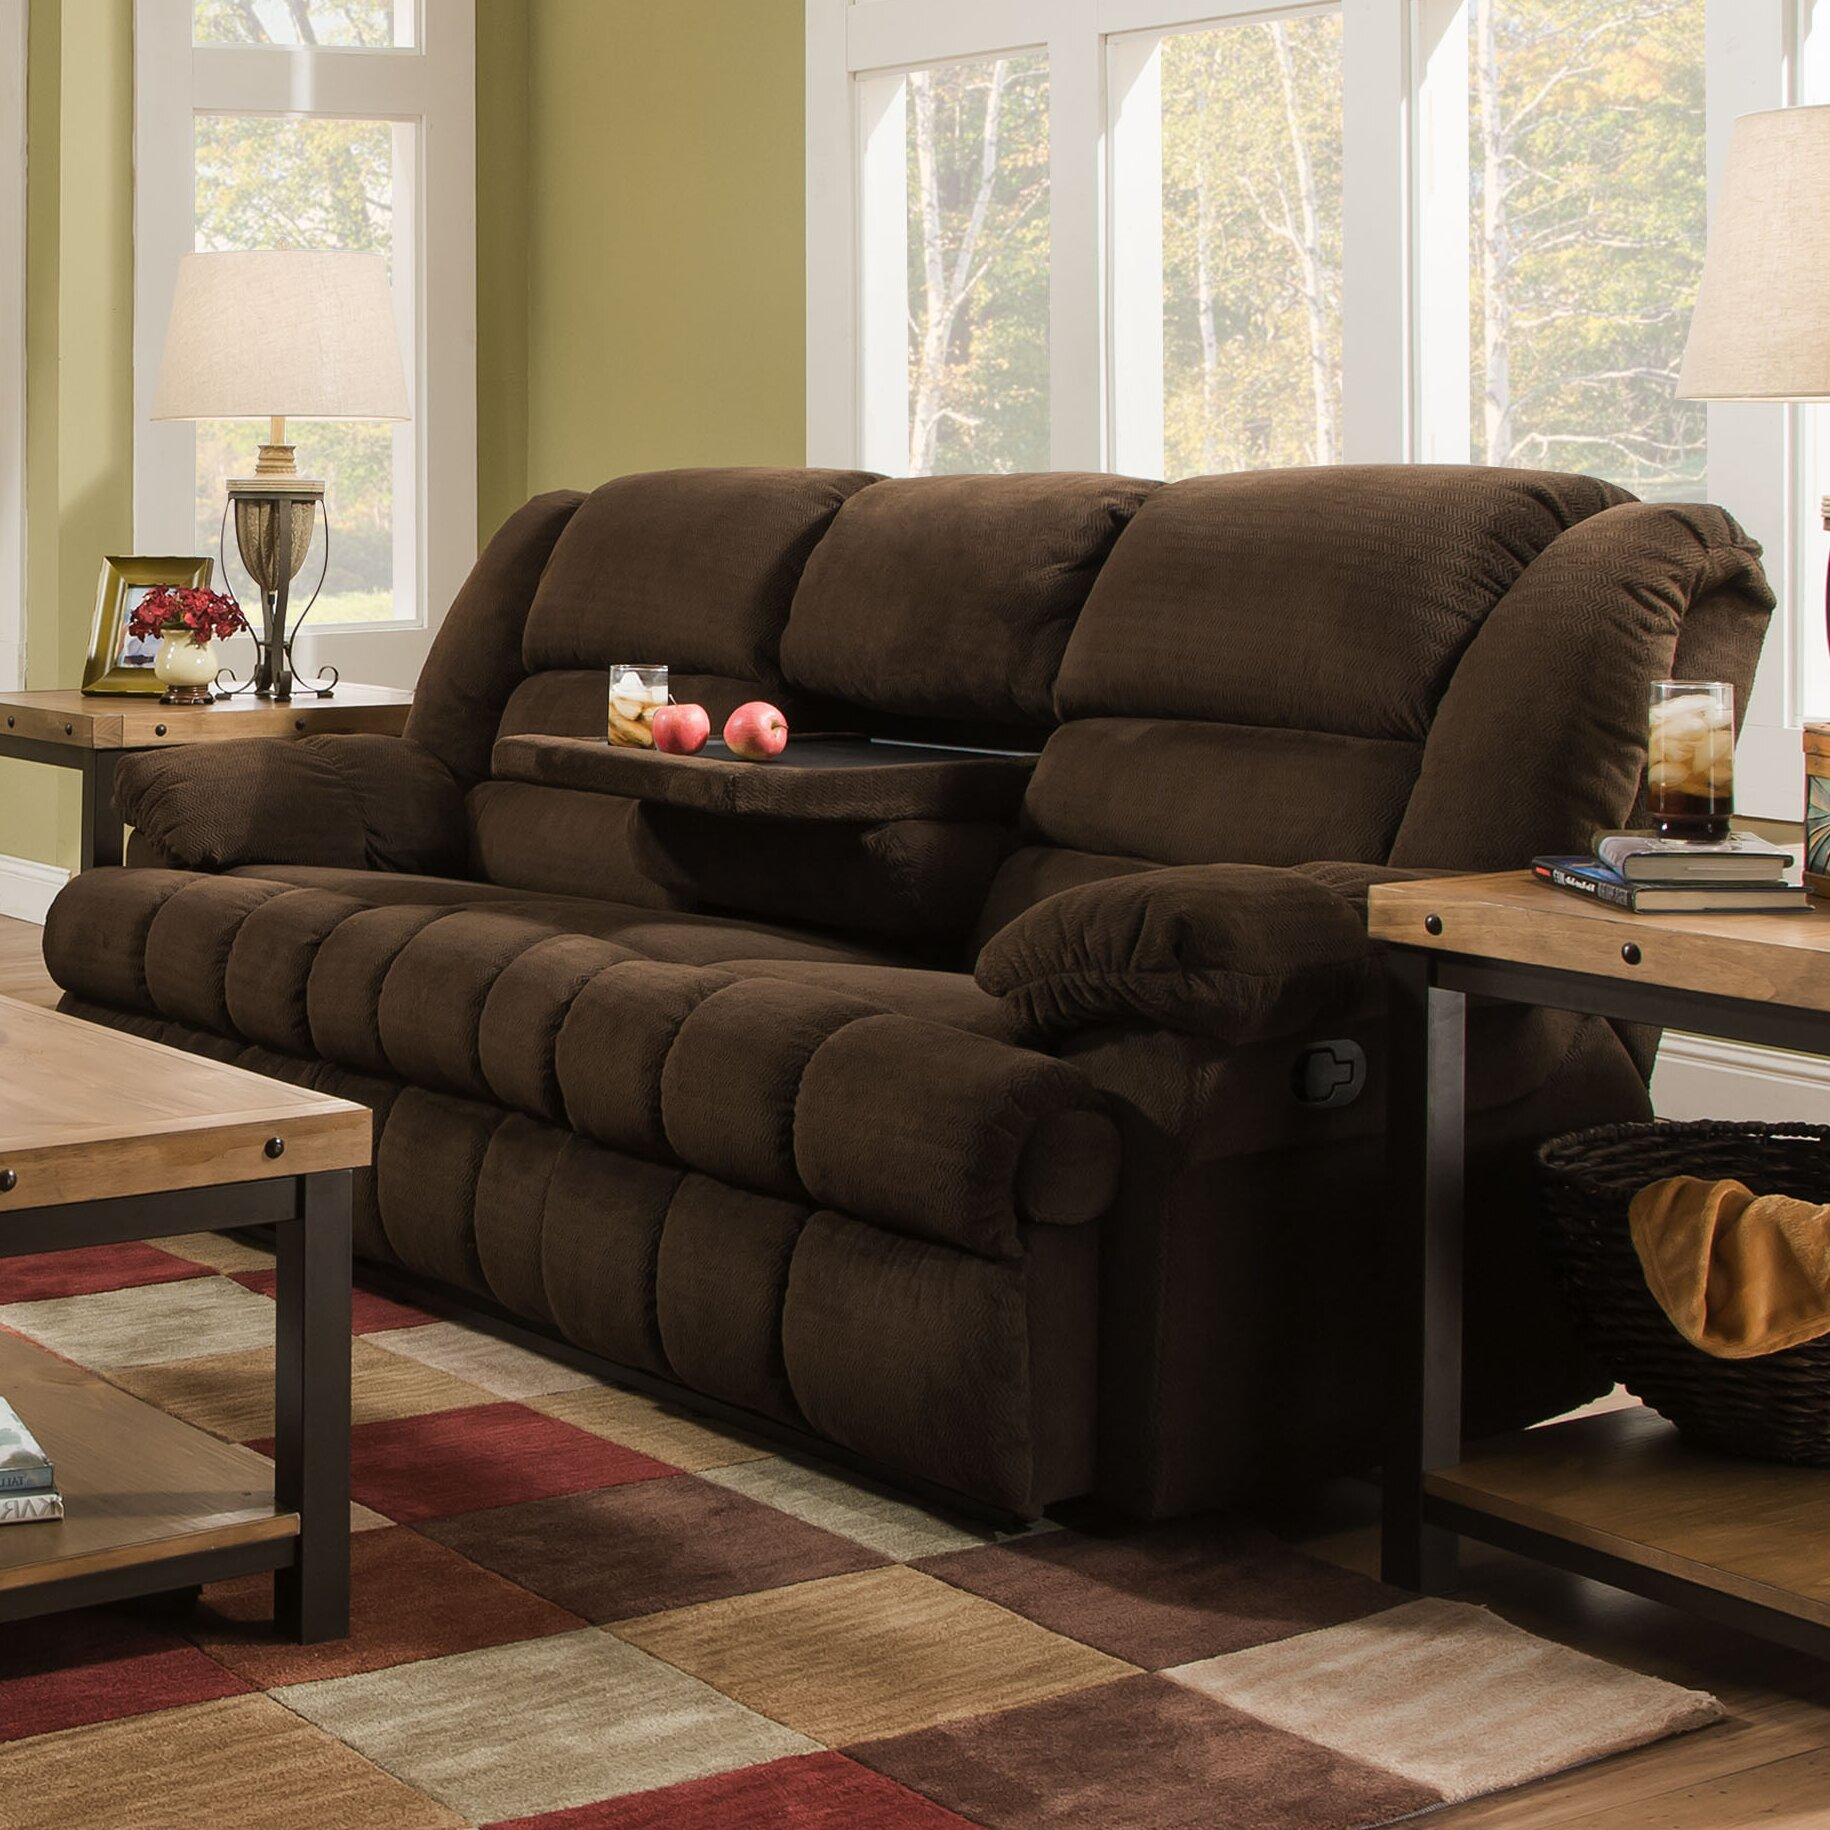 Darby Home Co Simmons Upholstery Mendes Double Motion Sofa